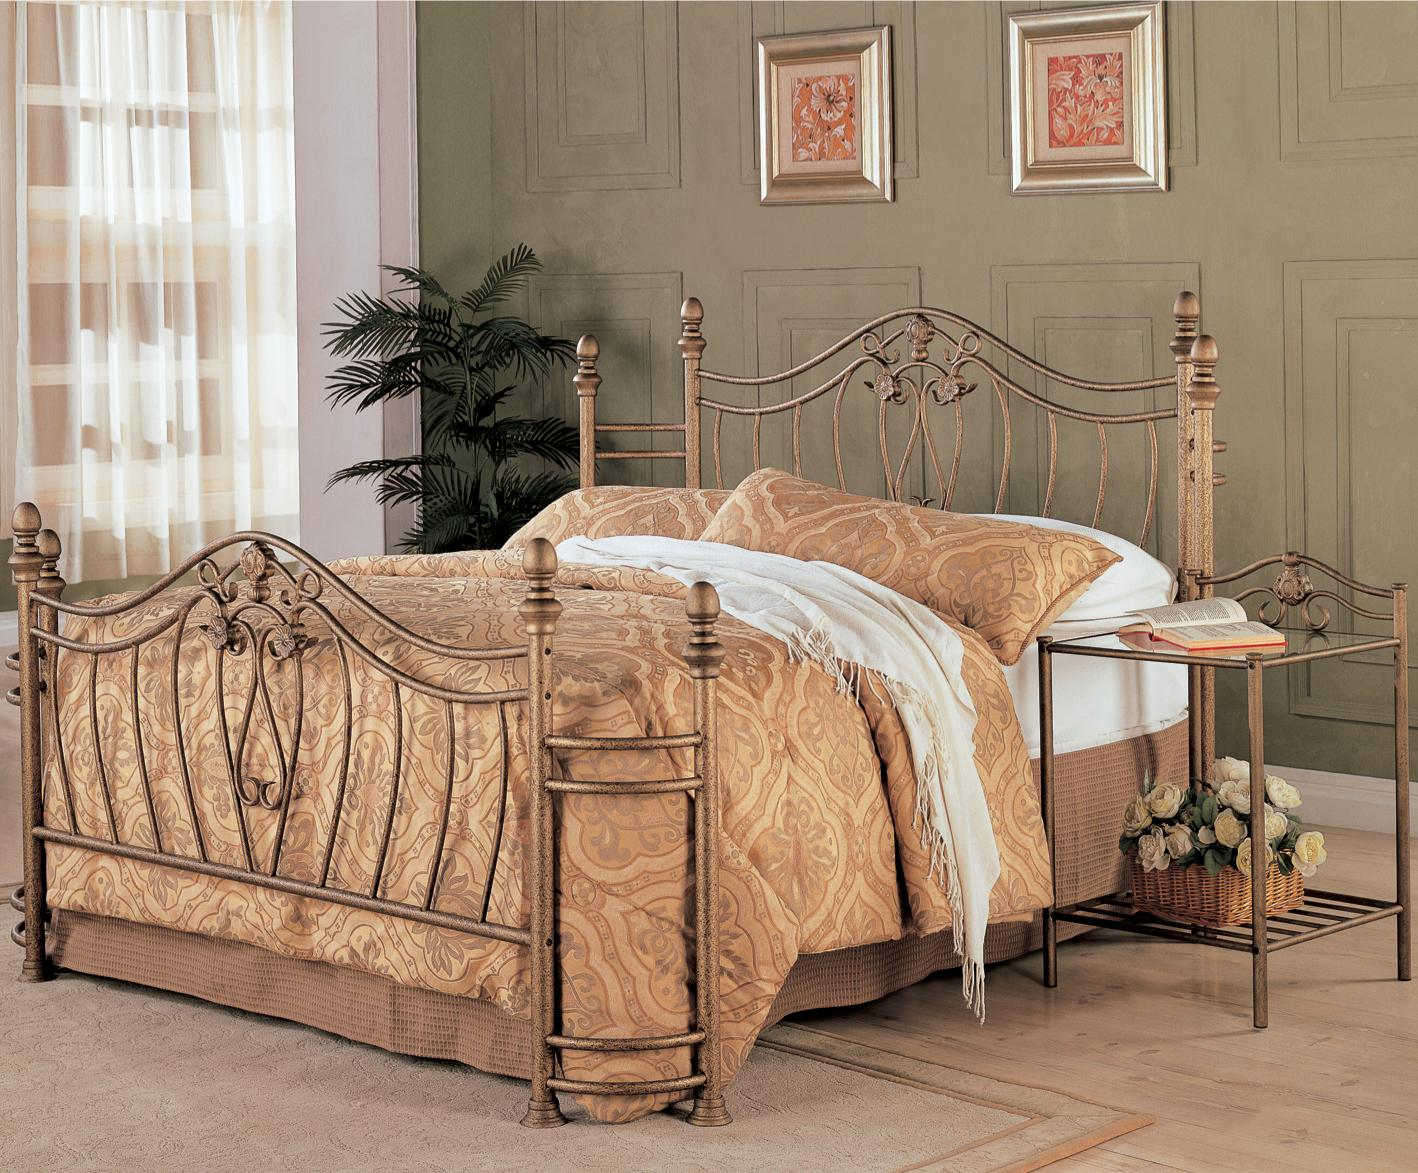 Coaster Sydney California King Bedroom Group - Item Number: 300170 CK Bedroom Group 1